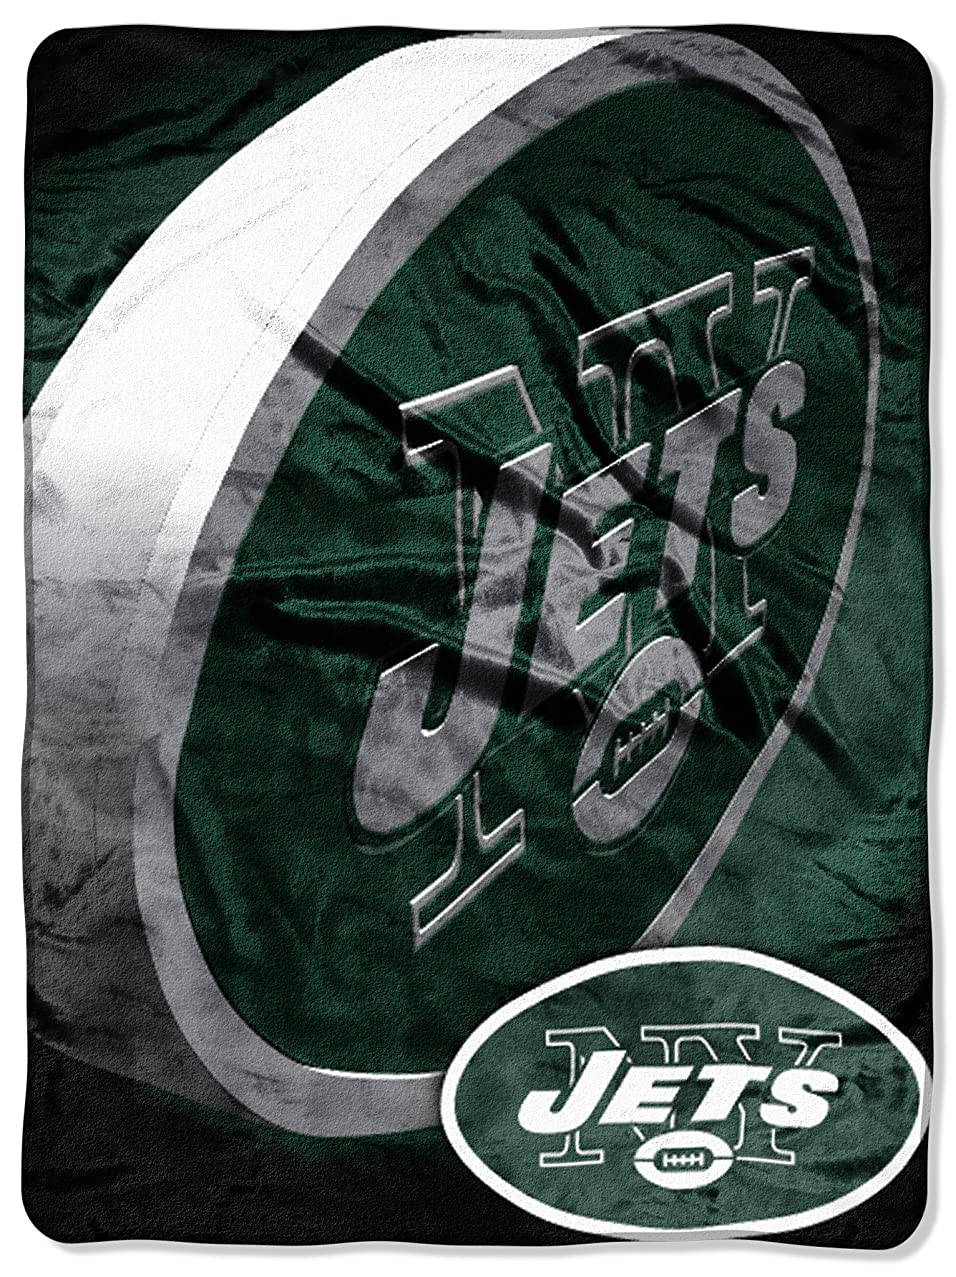 Officially Licensed NFL Bevel Micro Raschel Throw Blanket, 50